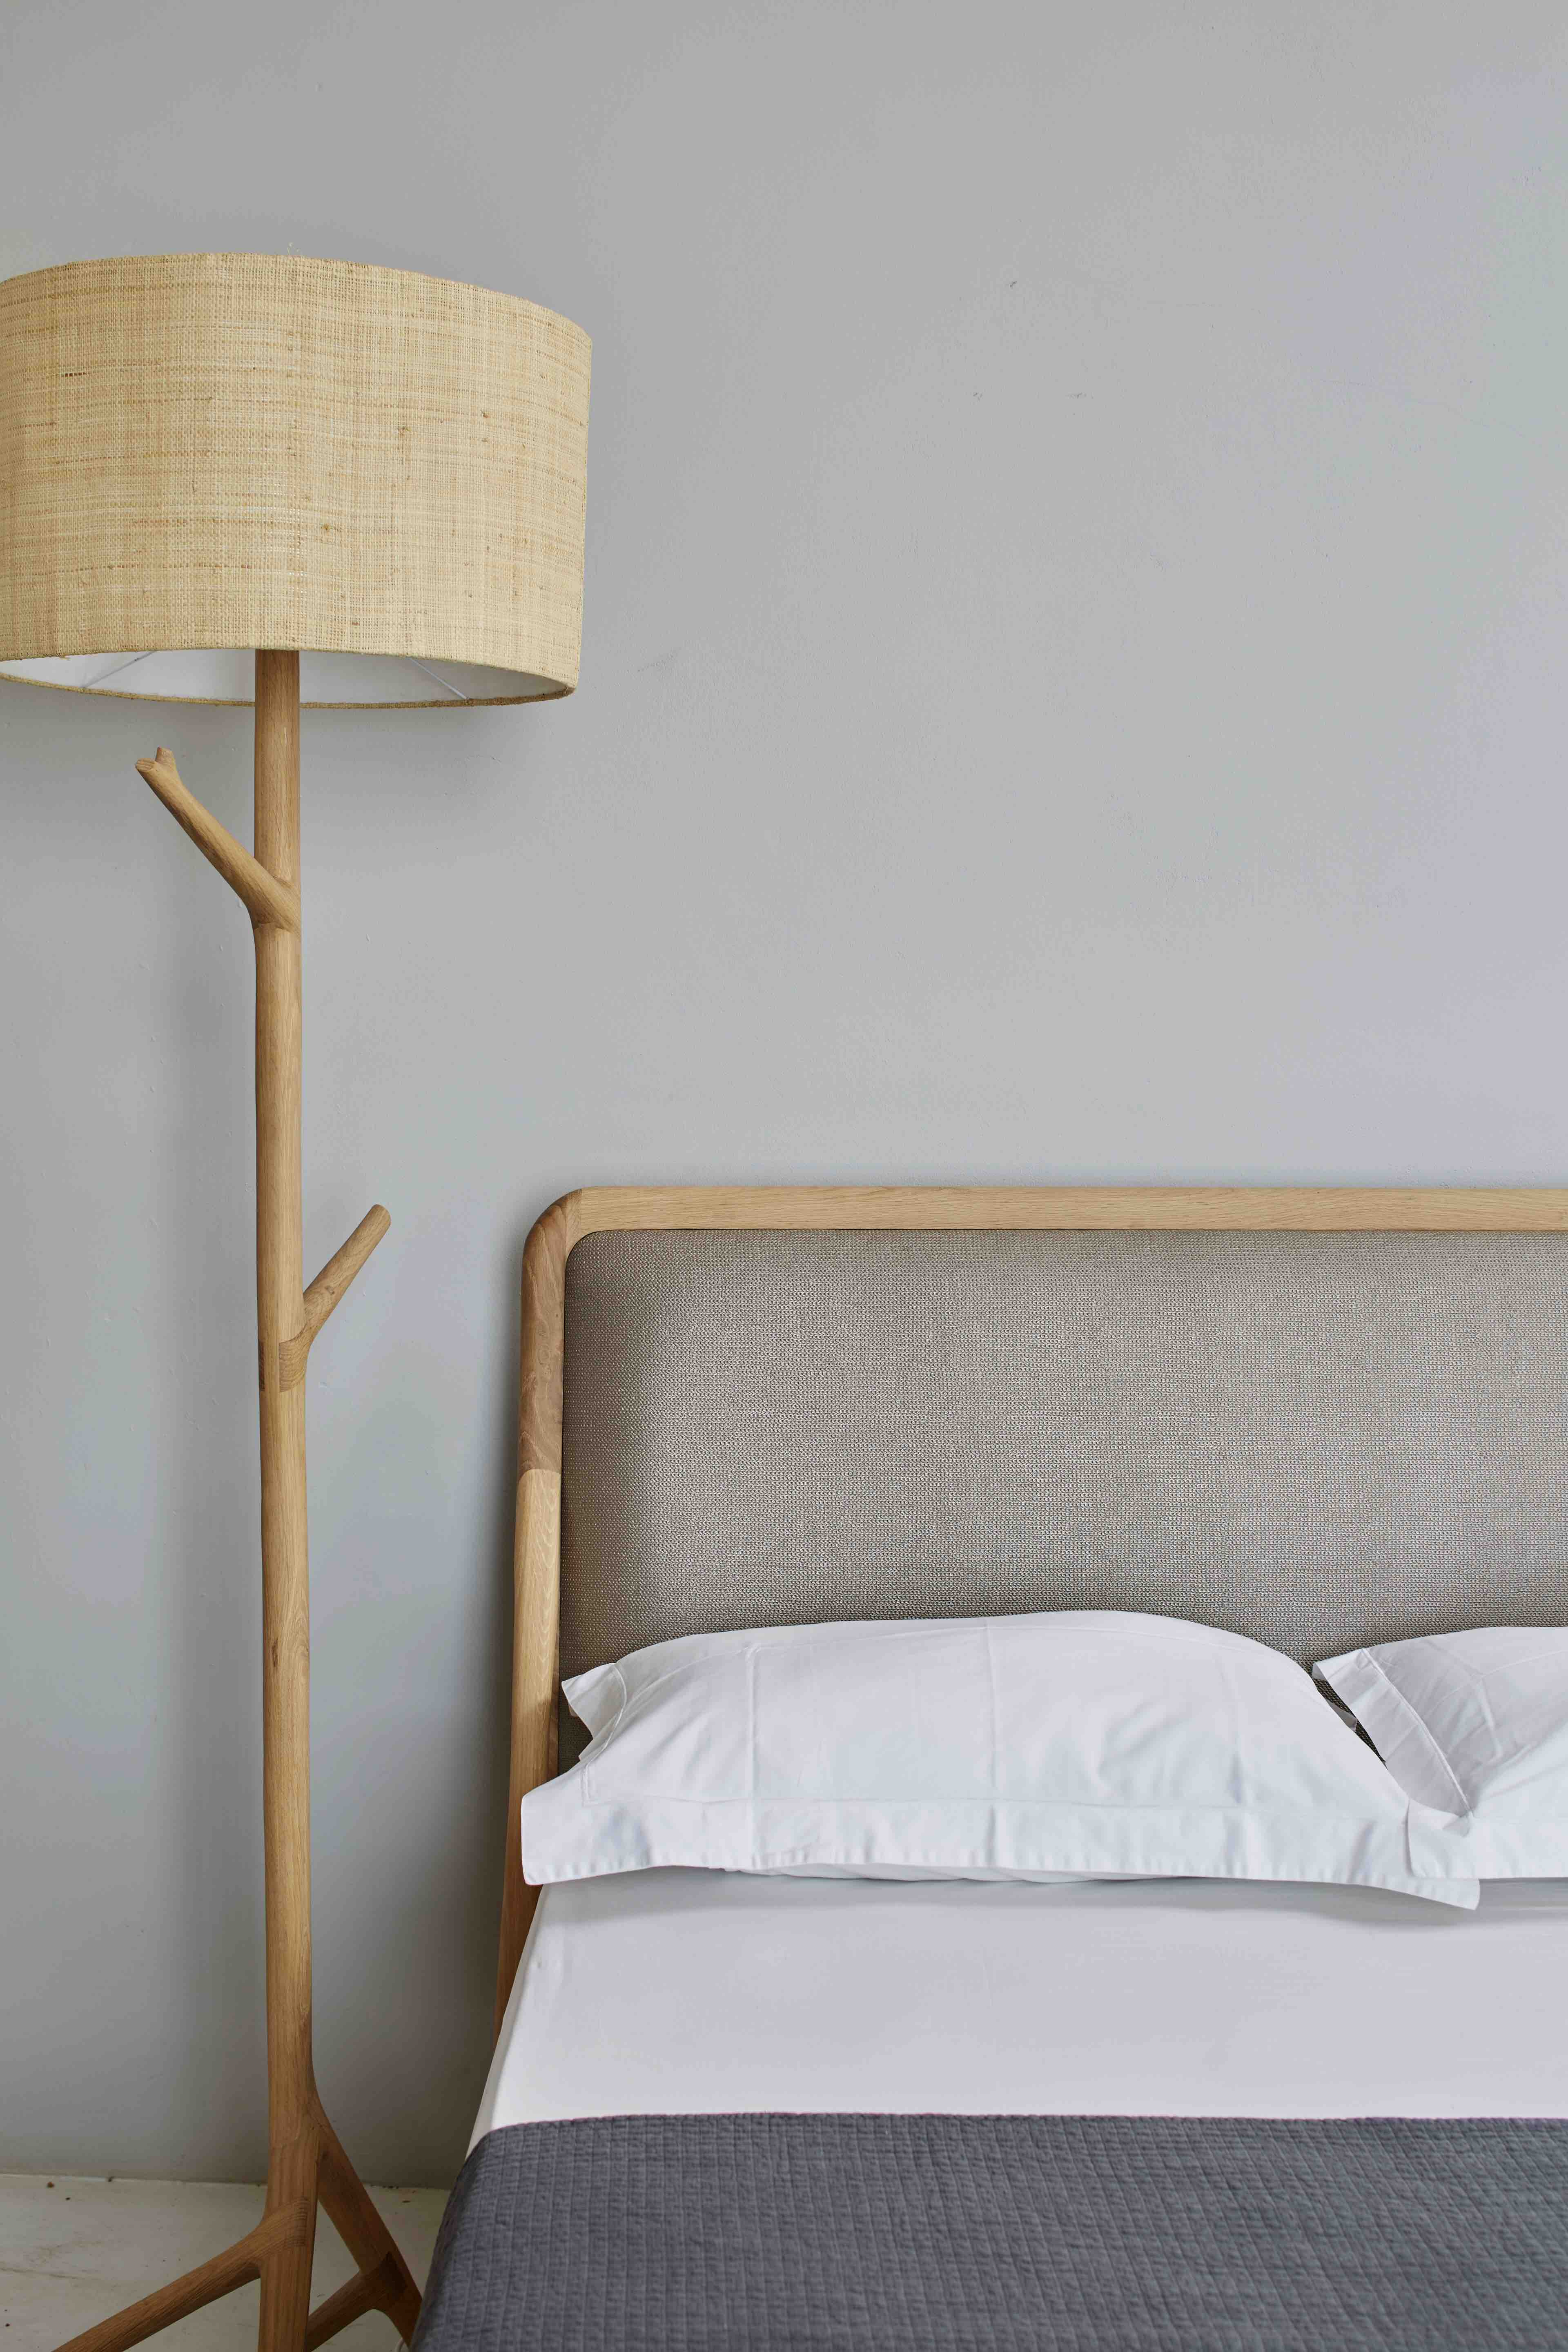 Standing Lamp and Melike Queen size bed.